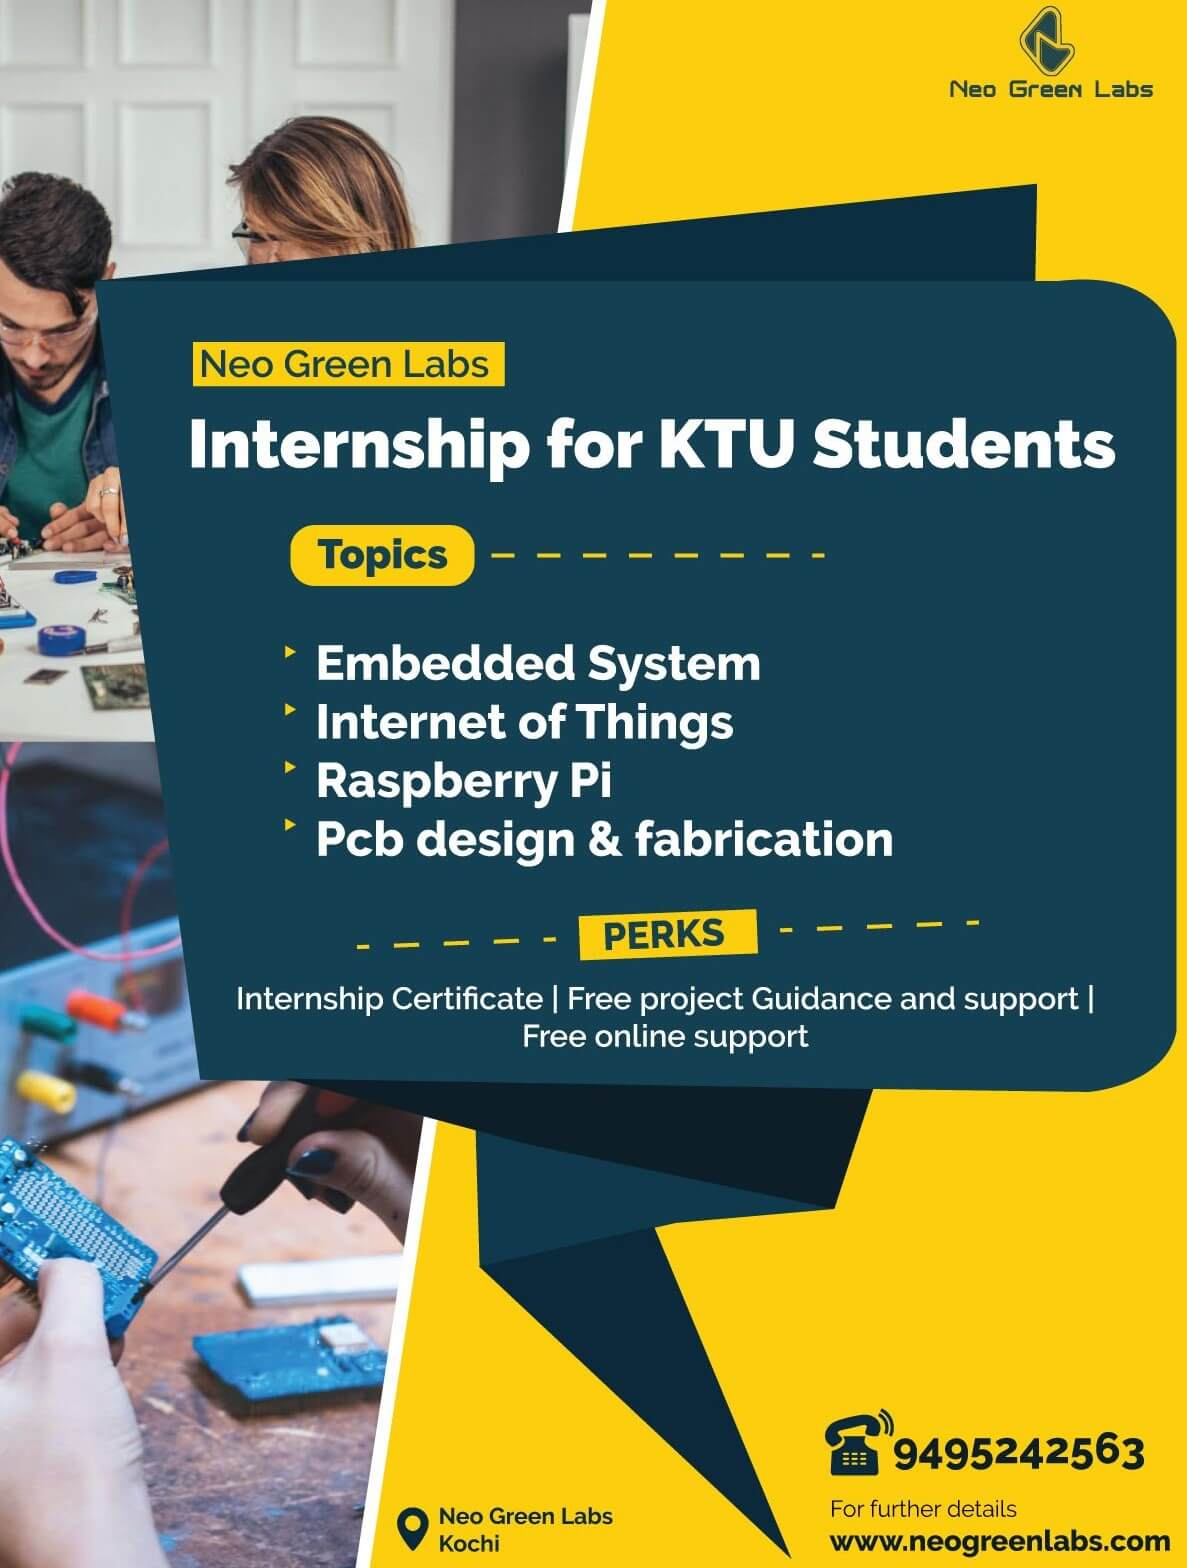 Neo Green Labs Internship Programs for KTU Students